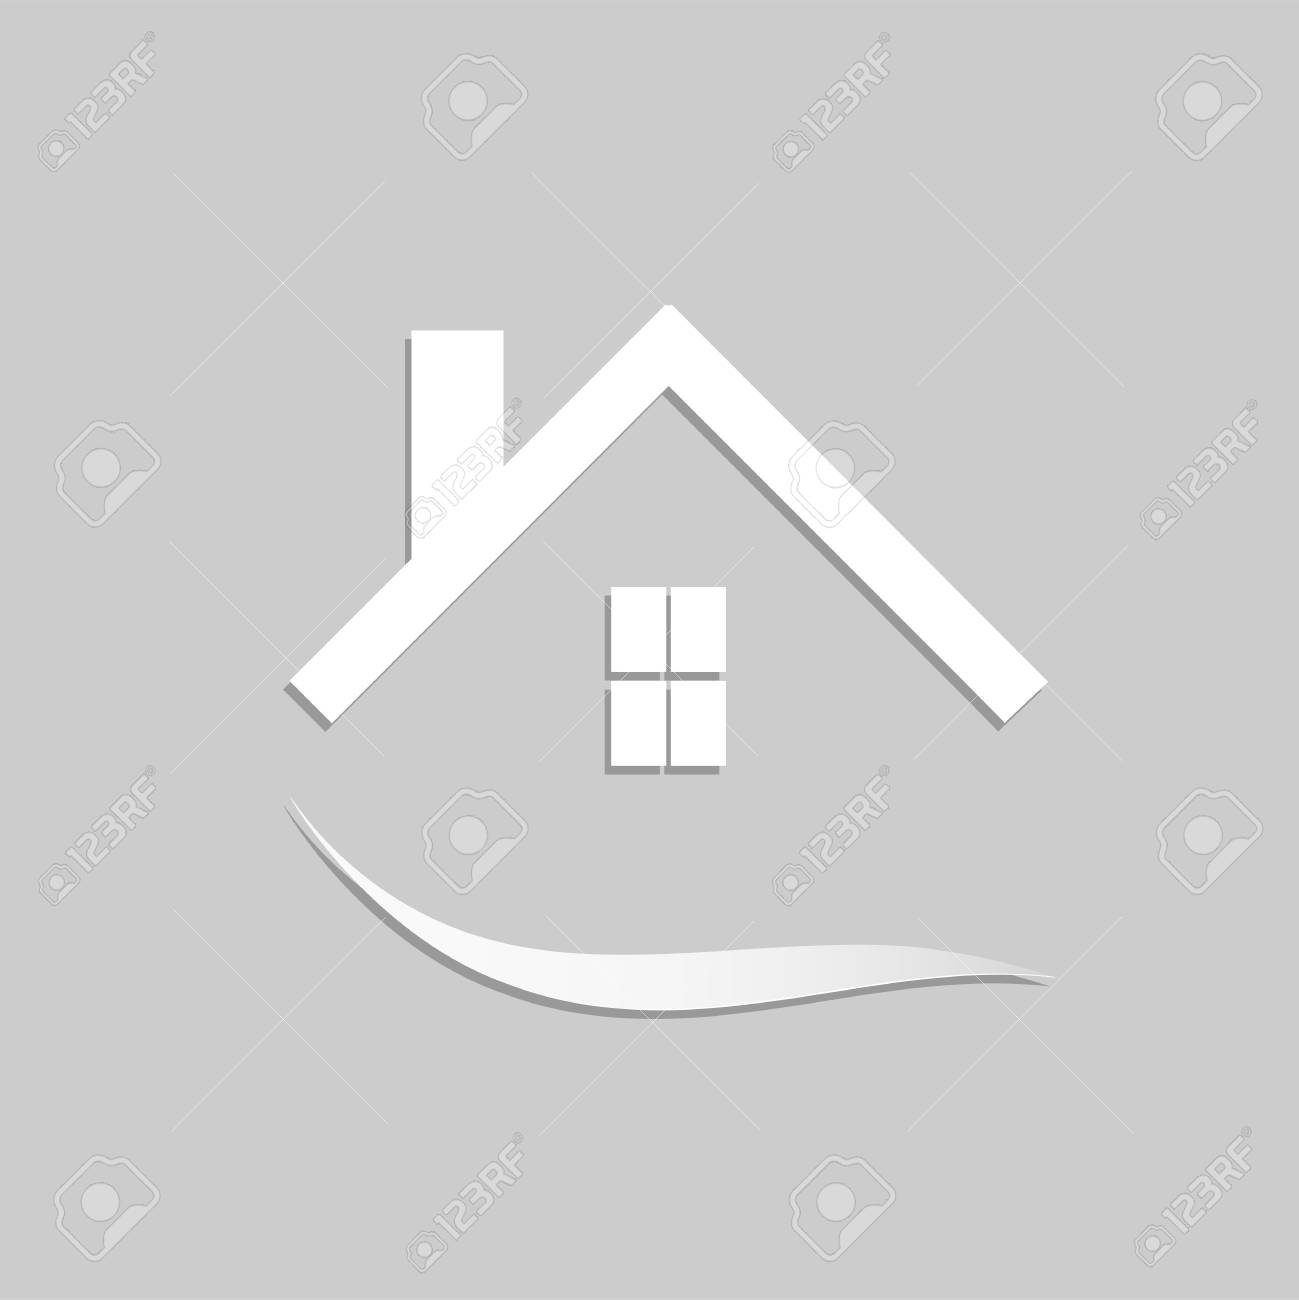 Concept image of an abstract house design isolated on a gray background. - 97016098